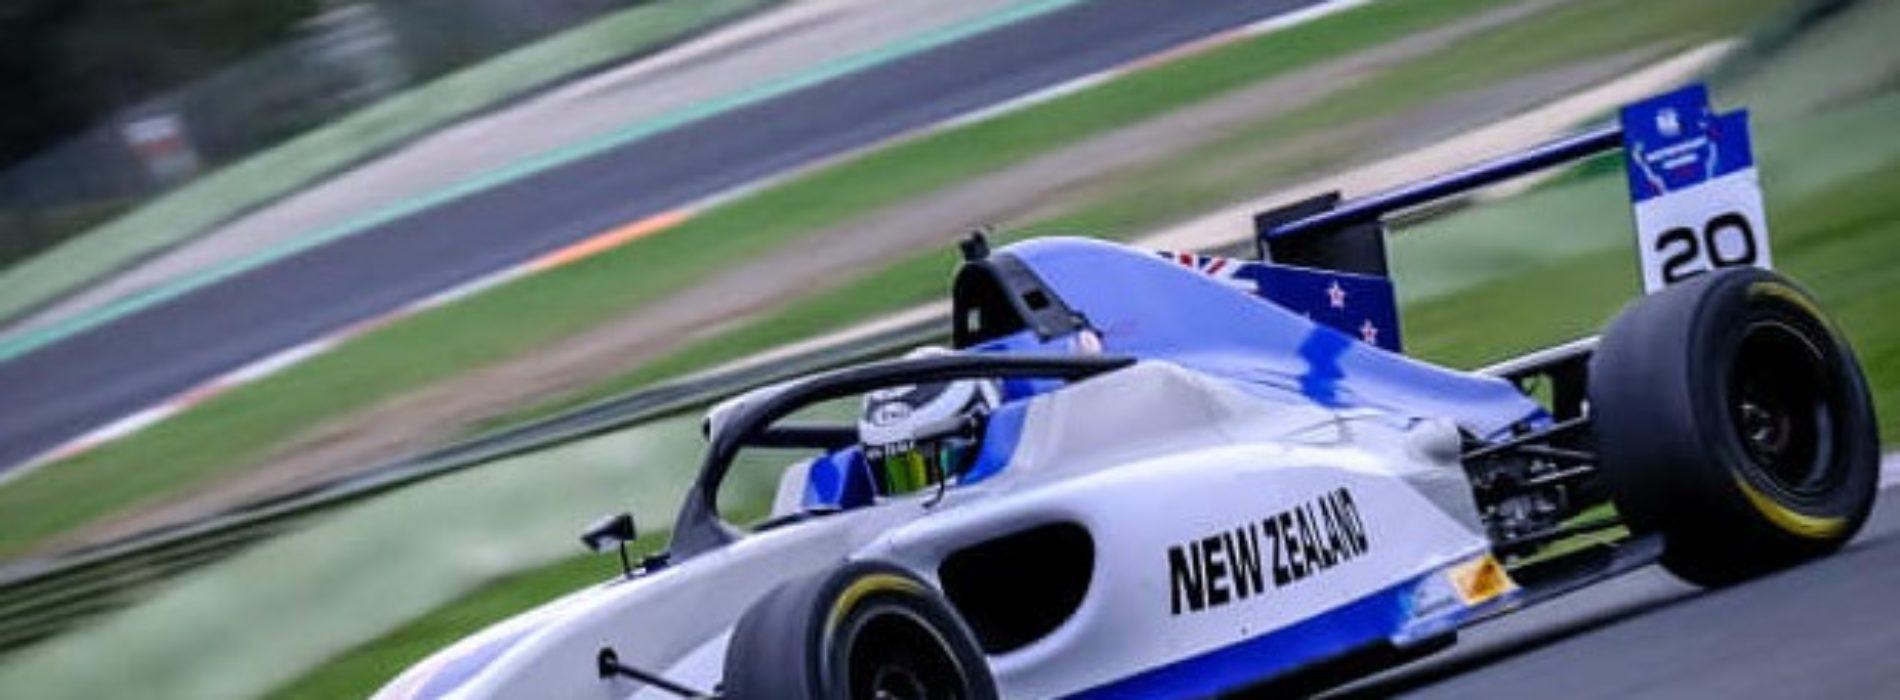 Flynn Mullany finishes 15th and Faine Kahia slipped off track after impressive Qualifying at FIA Motorsport Games